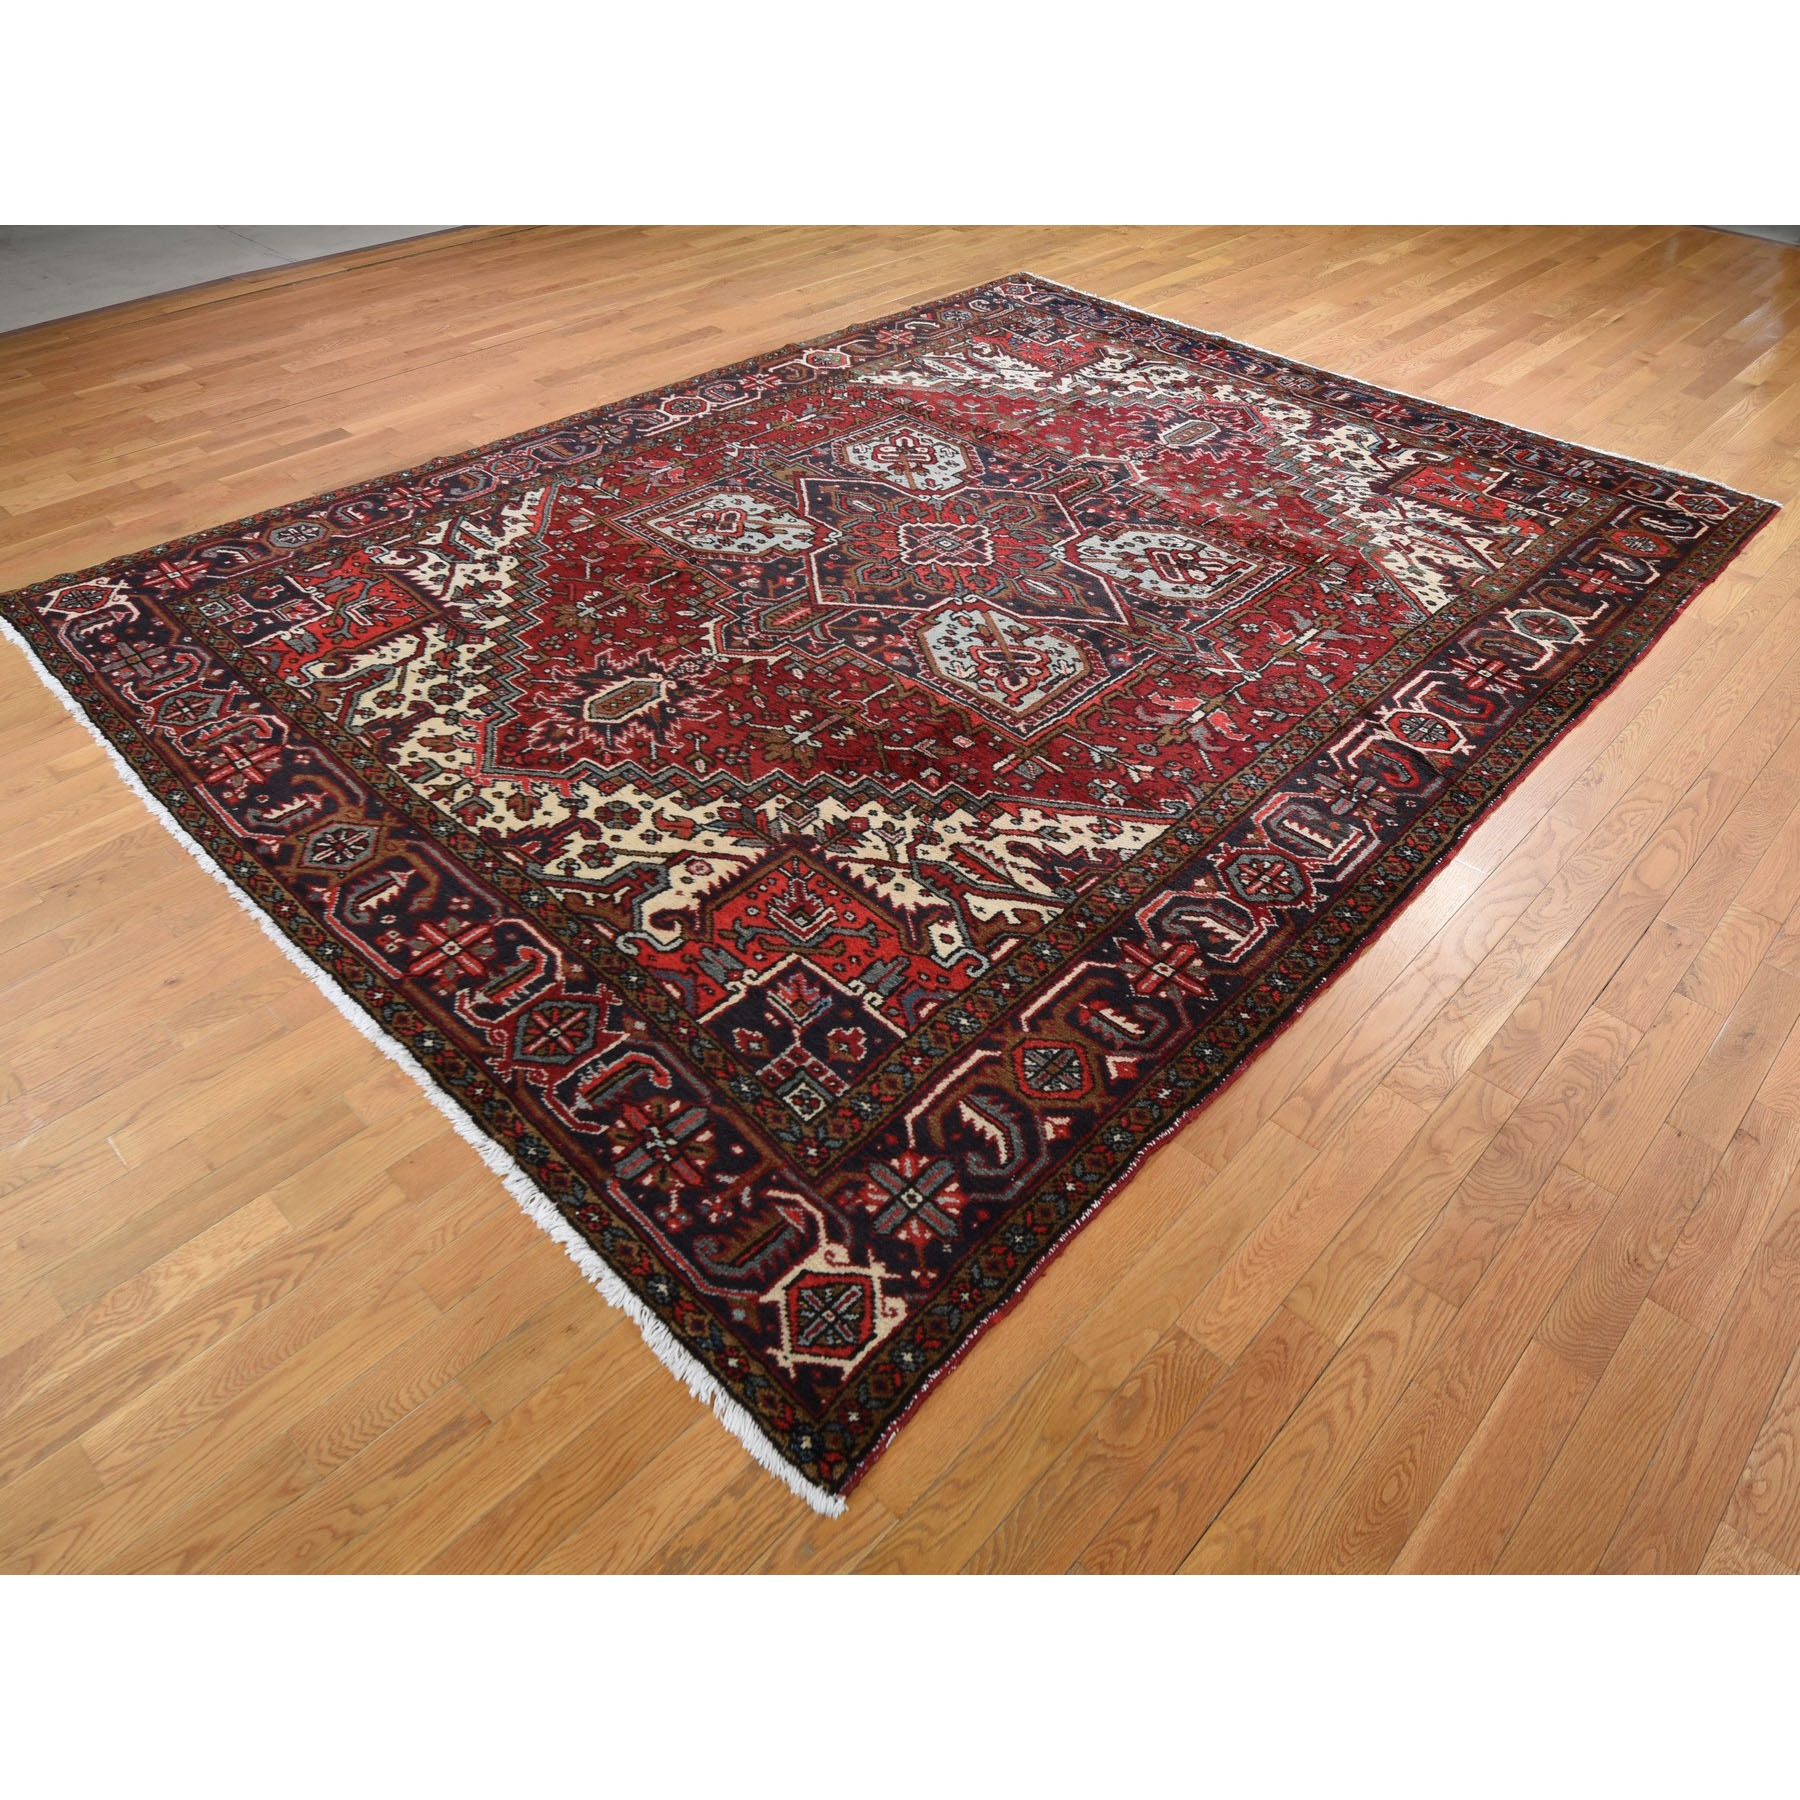 "9'1""x11'7"" Red Semi Antique Persian Heriz Geometric Design Thick and Plush Hand Knotted Oriental Rug"